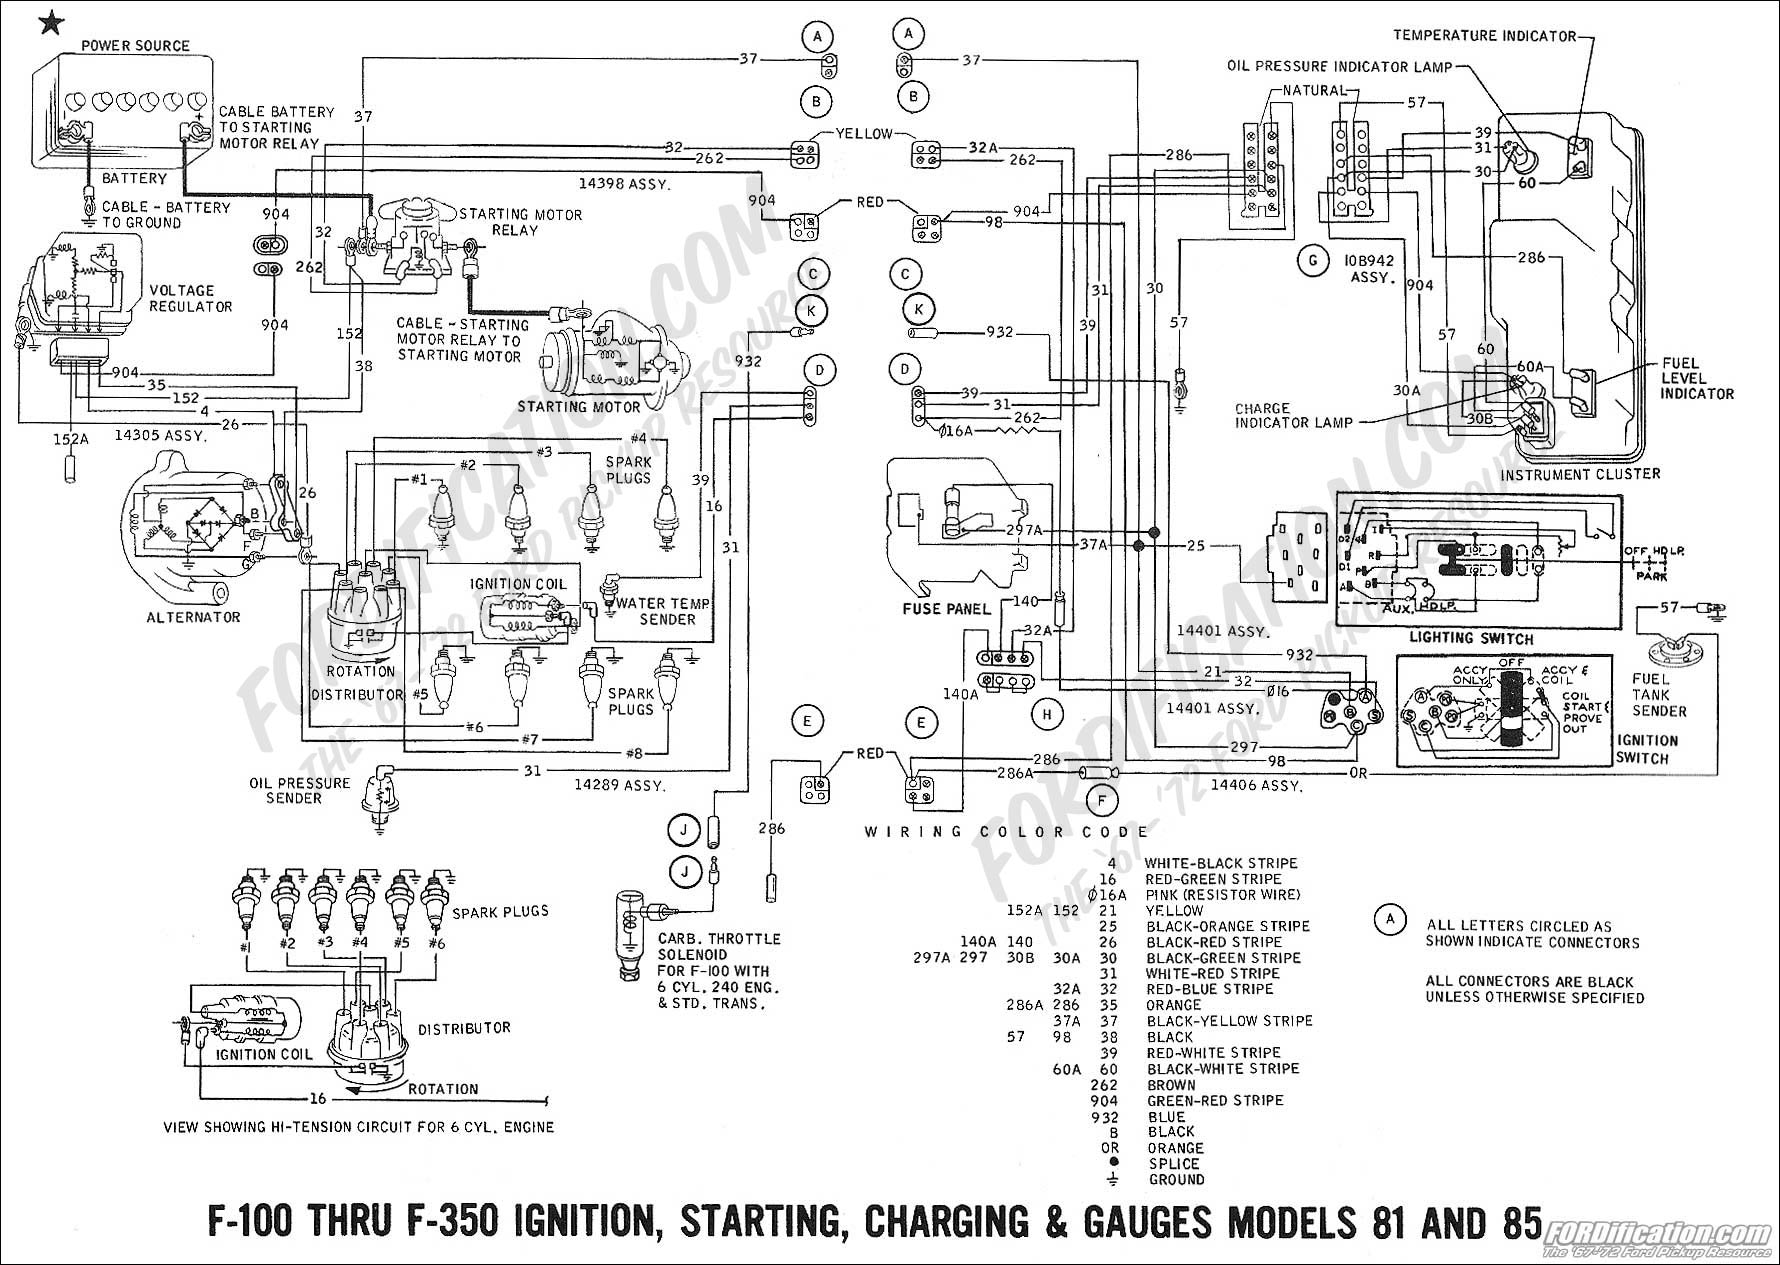 Ford Truck Technical Drawings and Schematics - Section H ... on 1963 vw wiring diagram, vw beetle fuel injection diagram, 1999 vw passat wiring diagram, 1967 vw wiring diagram, 1974 vw engine diagram, alfa romeo spider wiring diagram, vw rabbit wiring-diagram, vw turn signal wiring diagram, vw distributor diagram, fiat uno wiring diagram, vw buggy wiring-diagram, volkswagen fuel diagram, 1973 vw wiring diagram, porsche cayenne wiring diagram, vw starter wiring diagram, vw type 2 wiring diagram, vw beetle engine diagram, 68 vw wiring diagram, type 3 wiring diagram, vw light switch wiring,